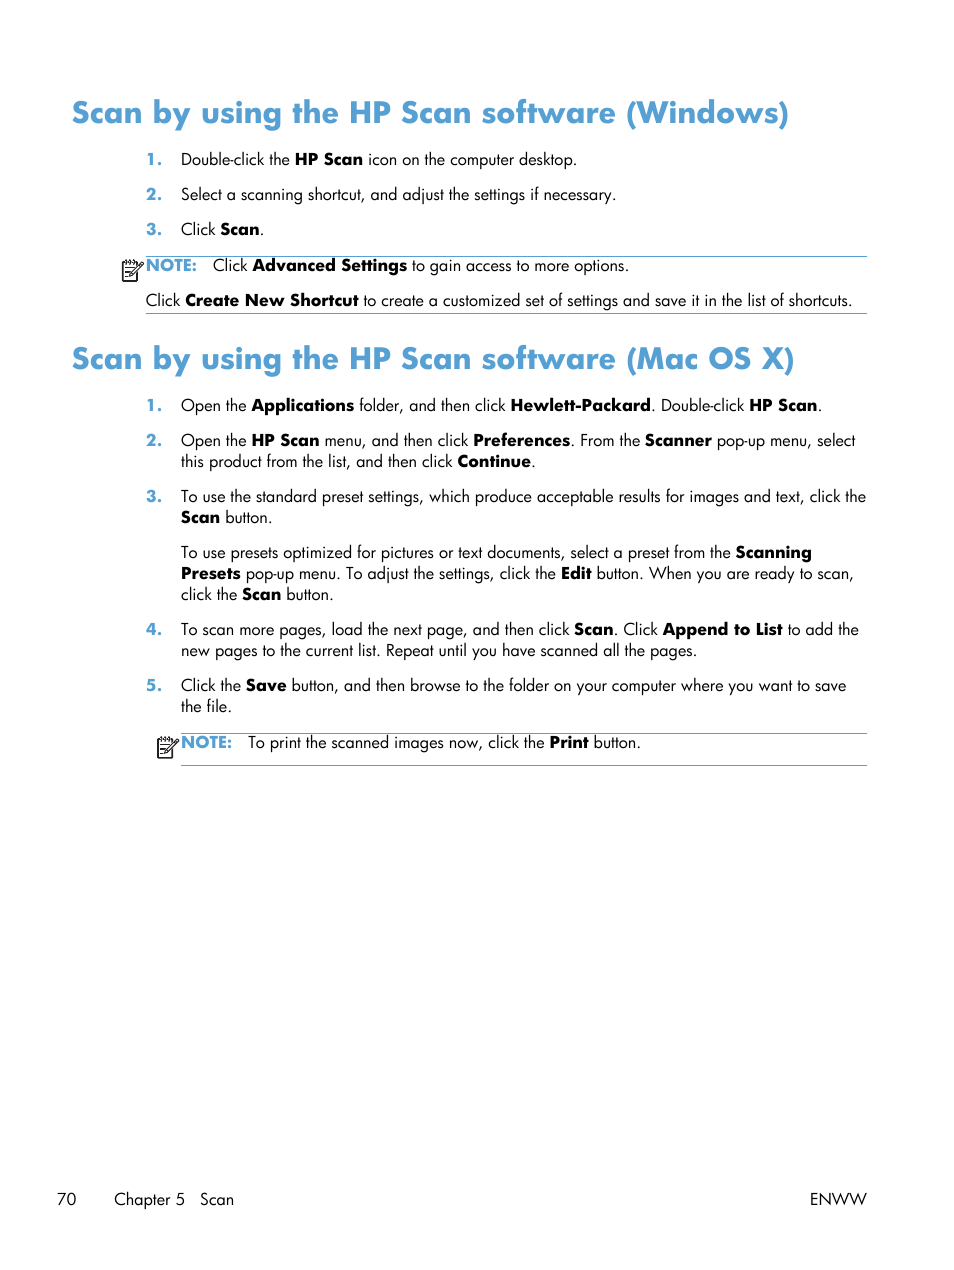 Scan by using the hp scan software (windows), Scan by using the hp